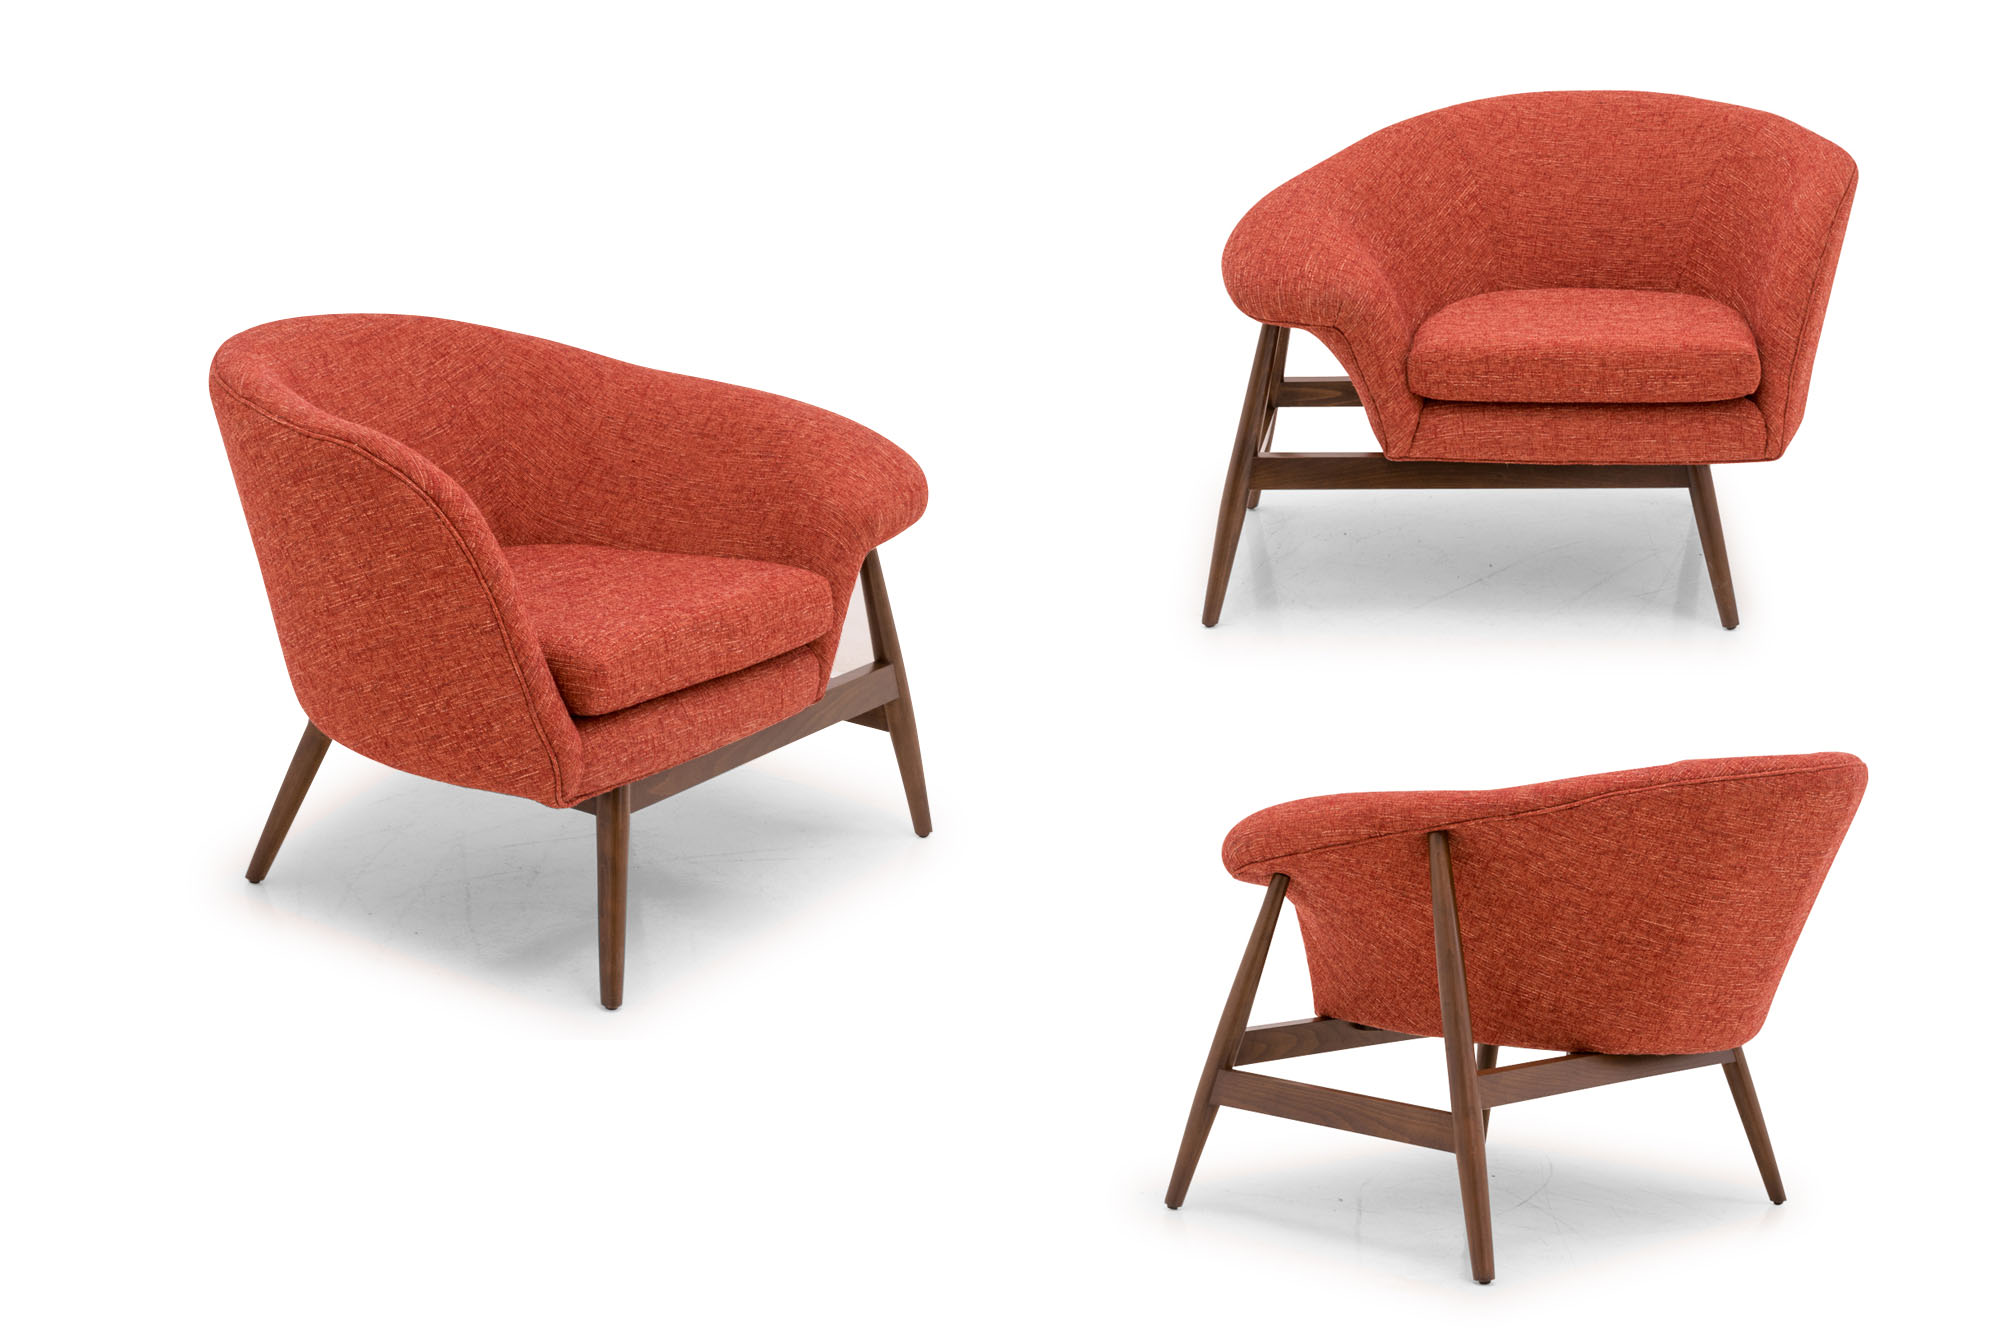 Mid century modern furniture joybird modern house for Mid century furniture online